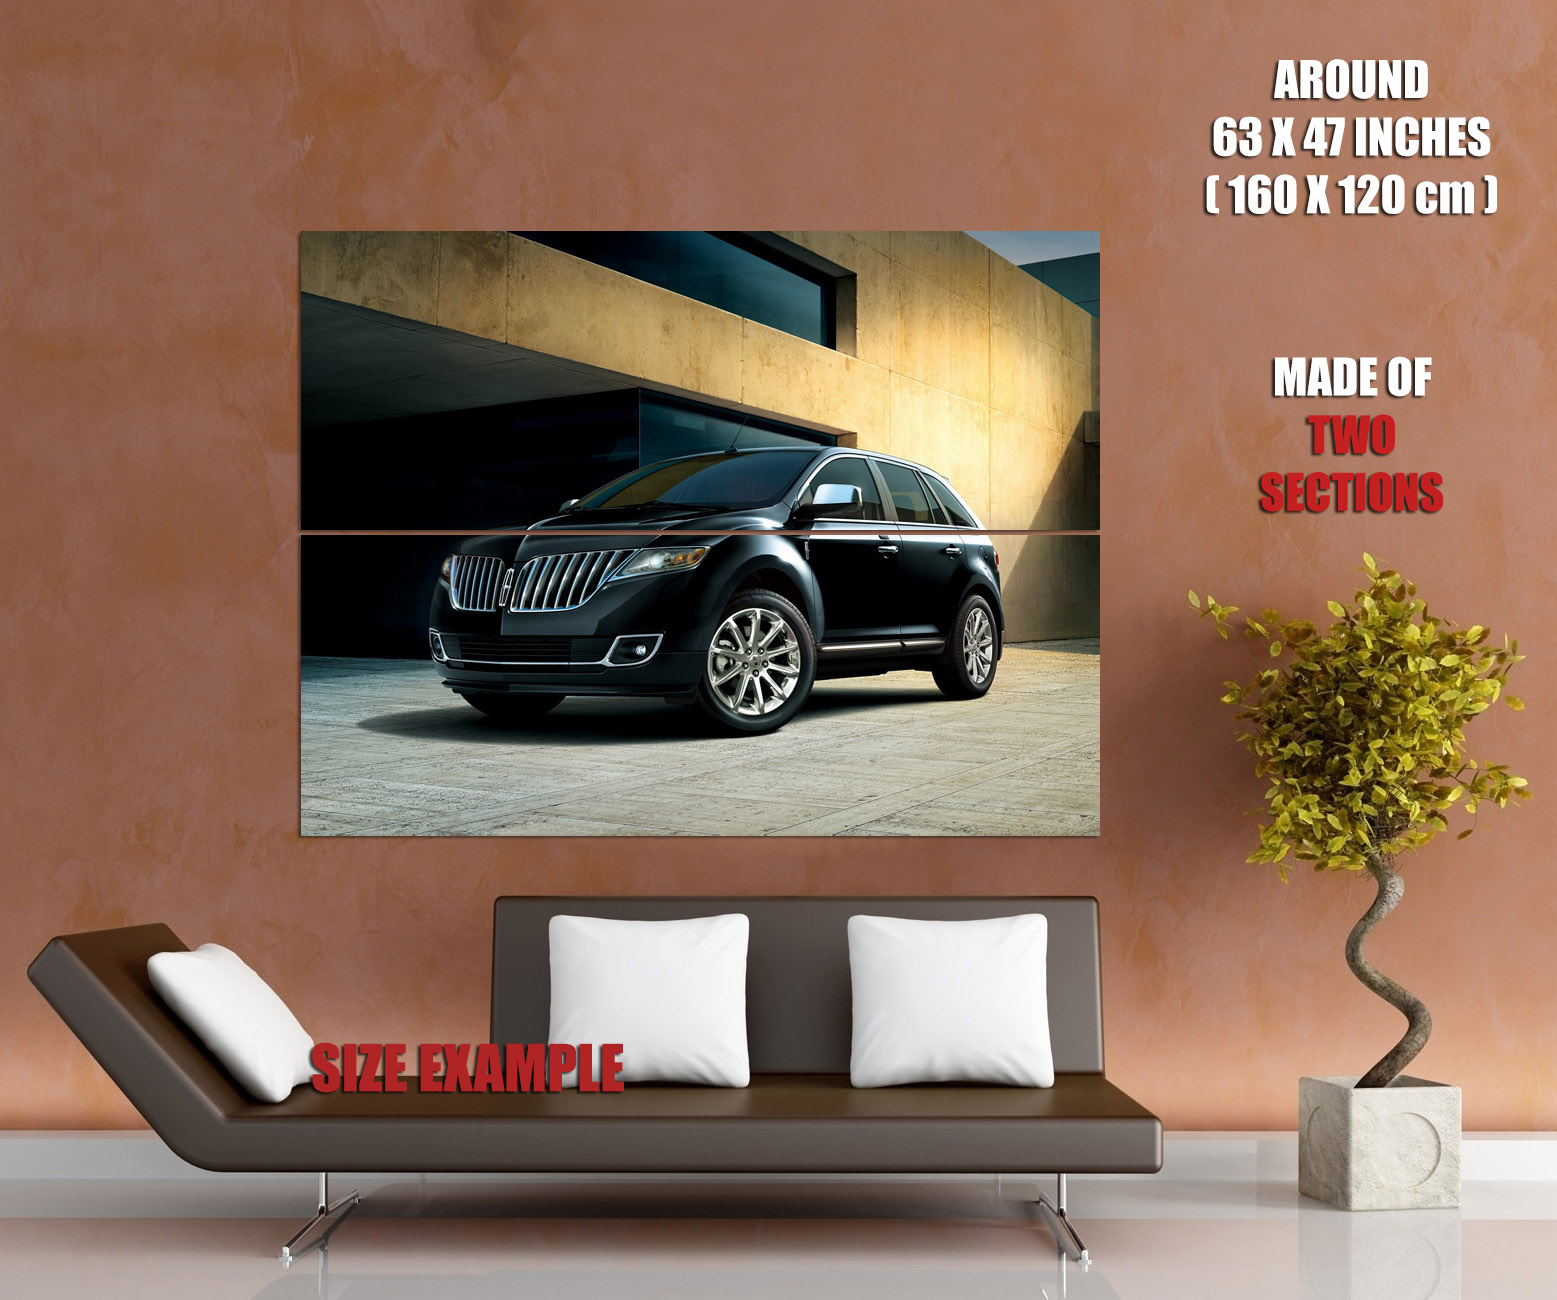 D7970 Lincoln Mkx Luxury Crossover Car Gigantic Print Poster Ebay